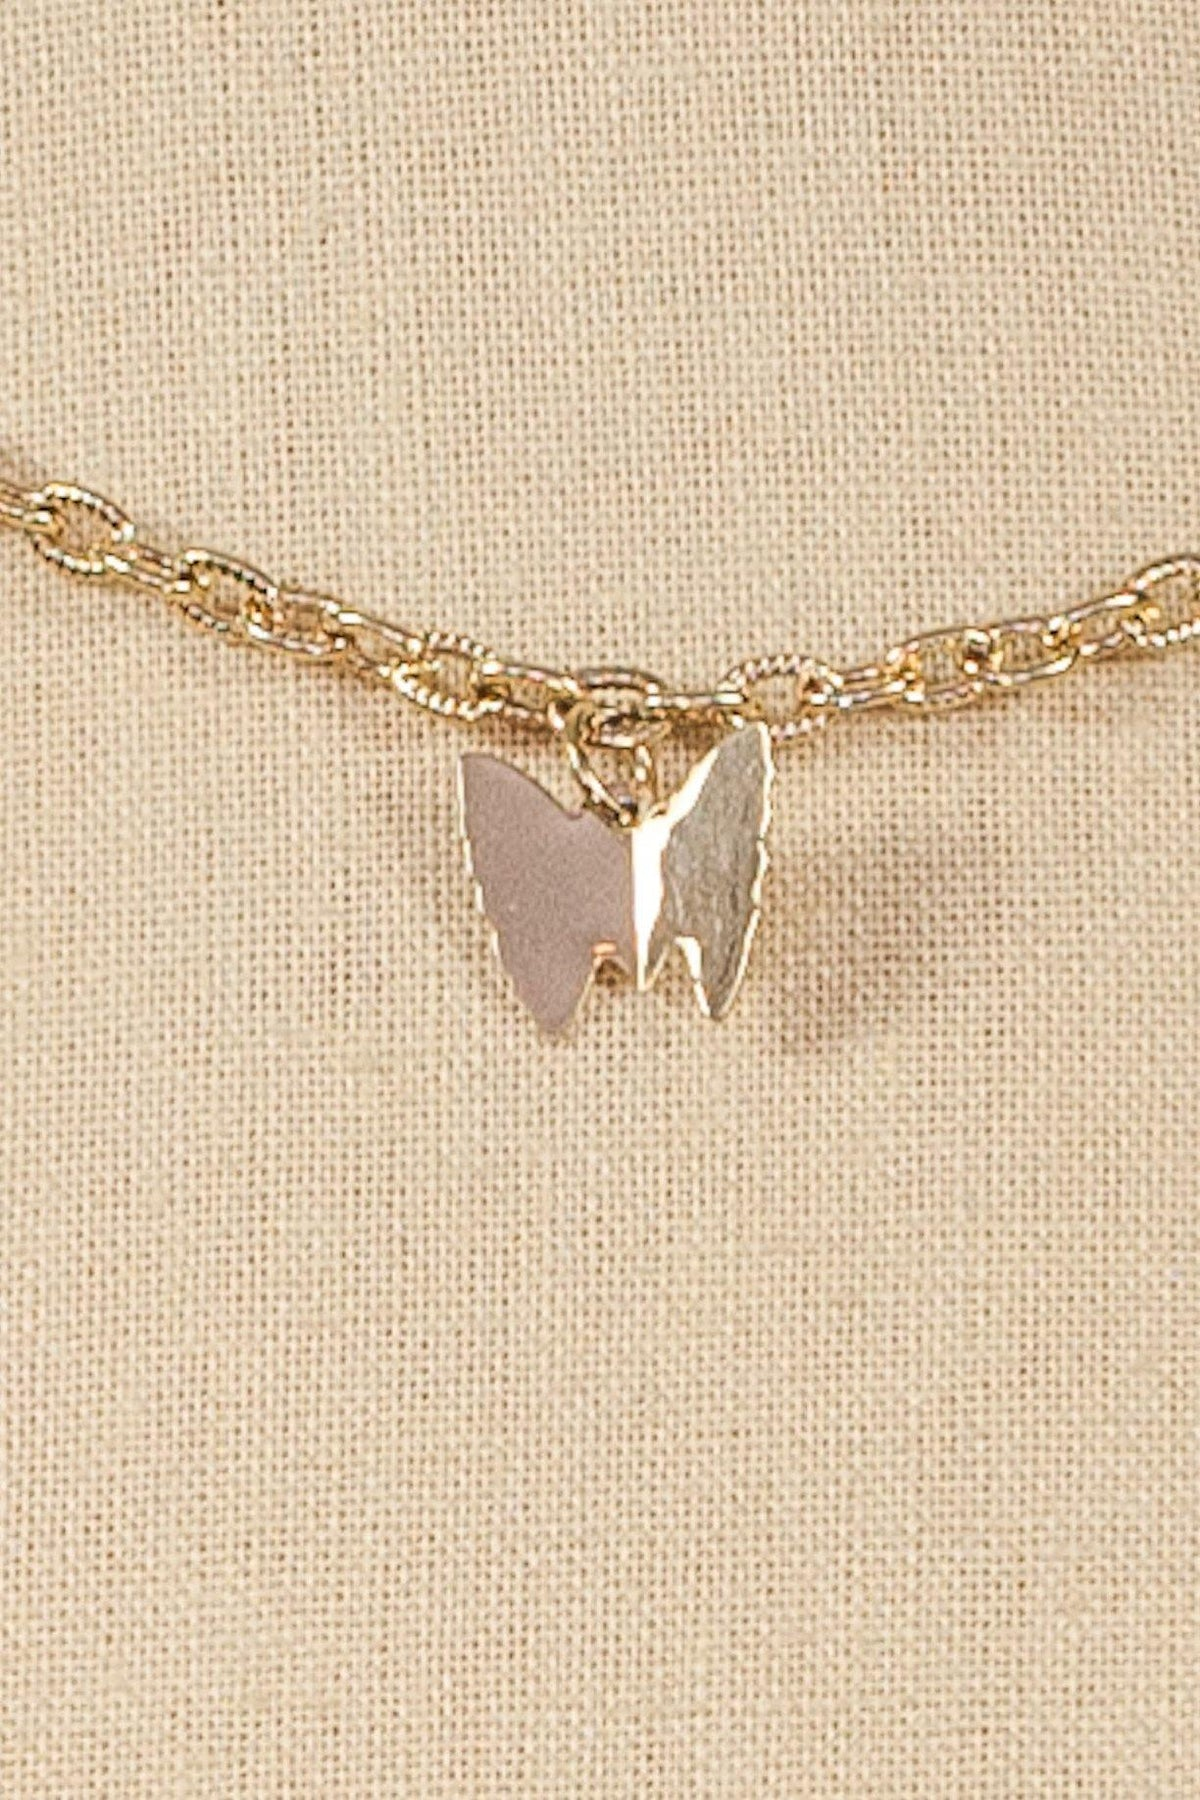 70's Sarah Coventry Butterfly Charm Layering Necklace